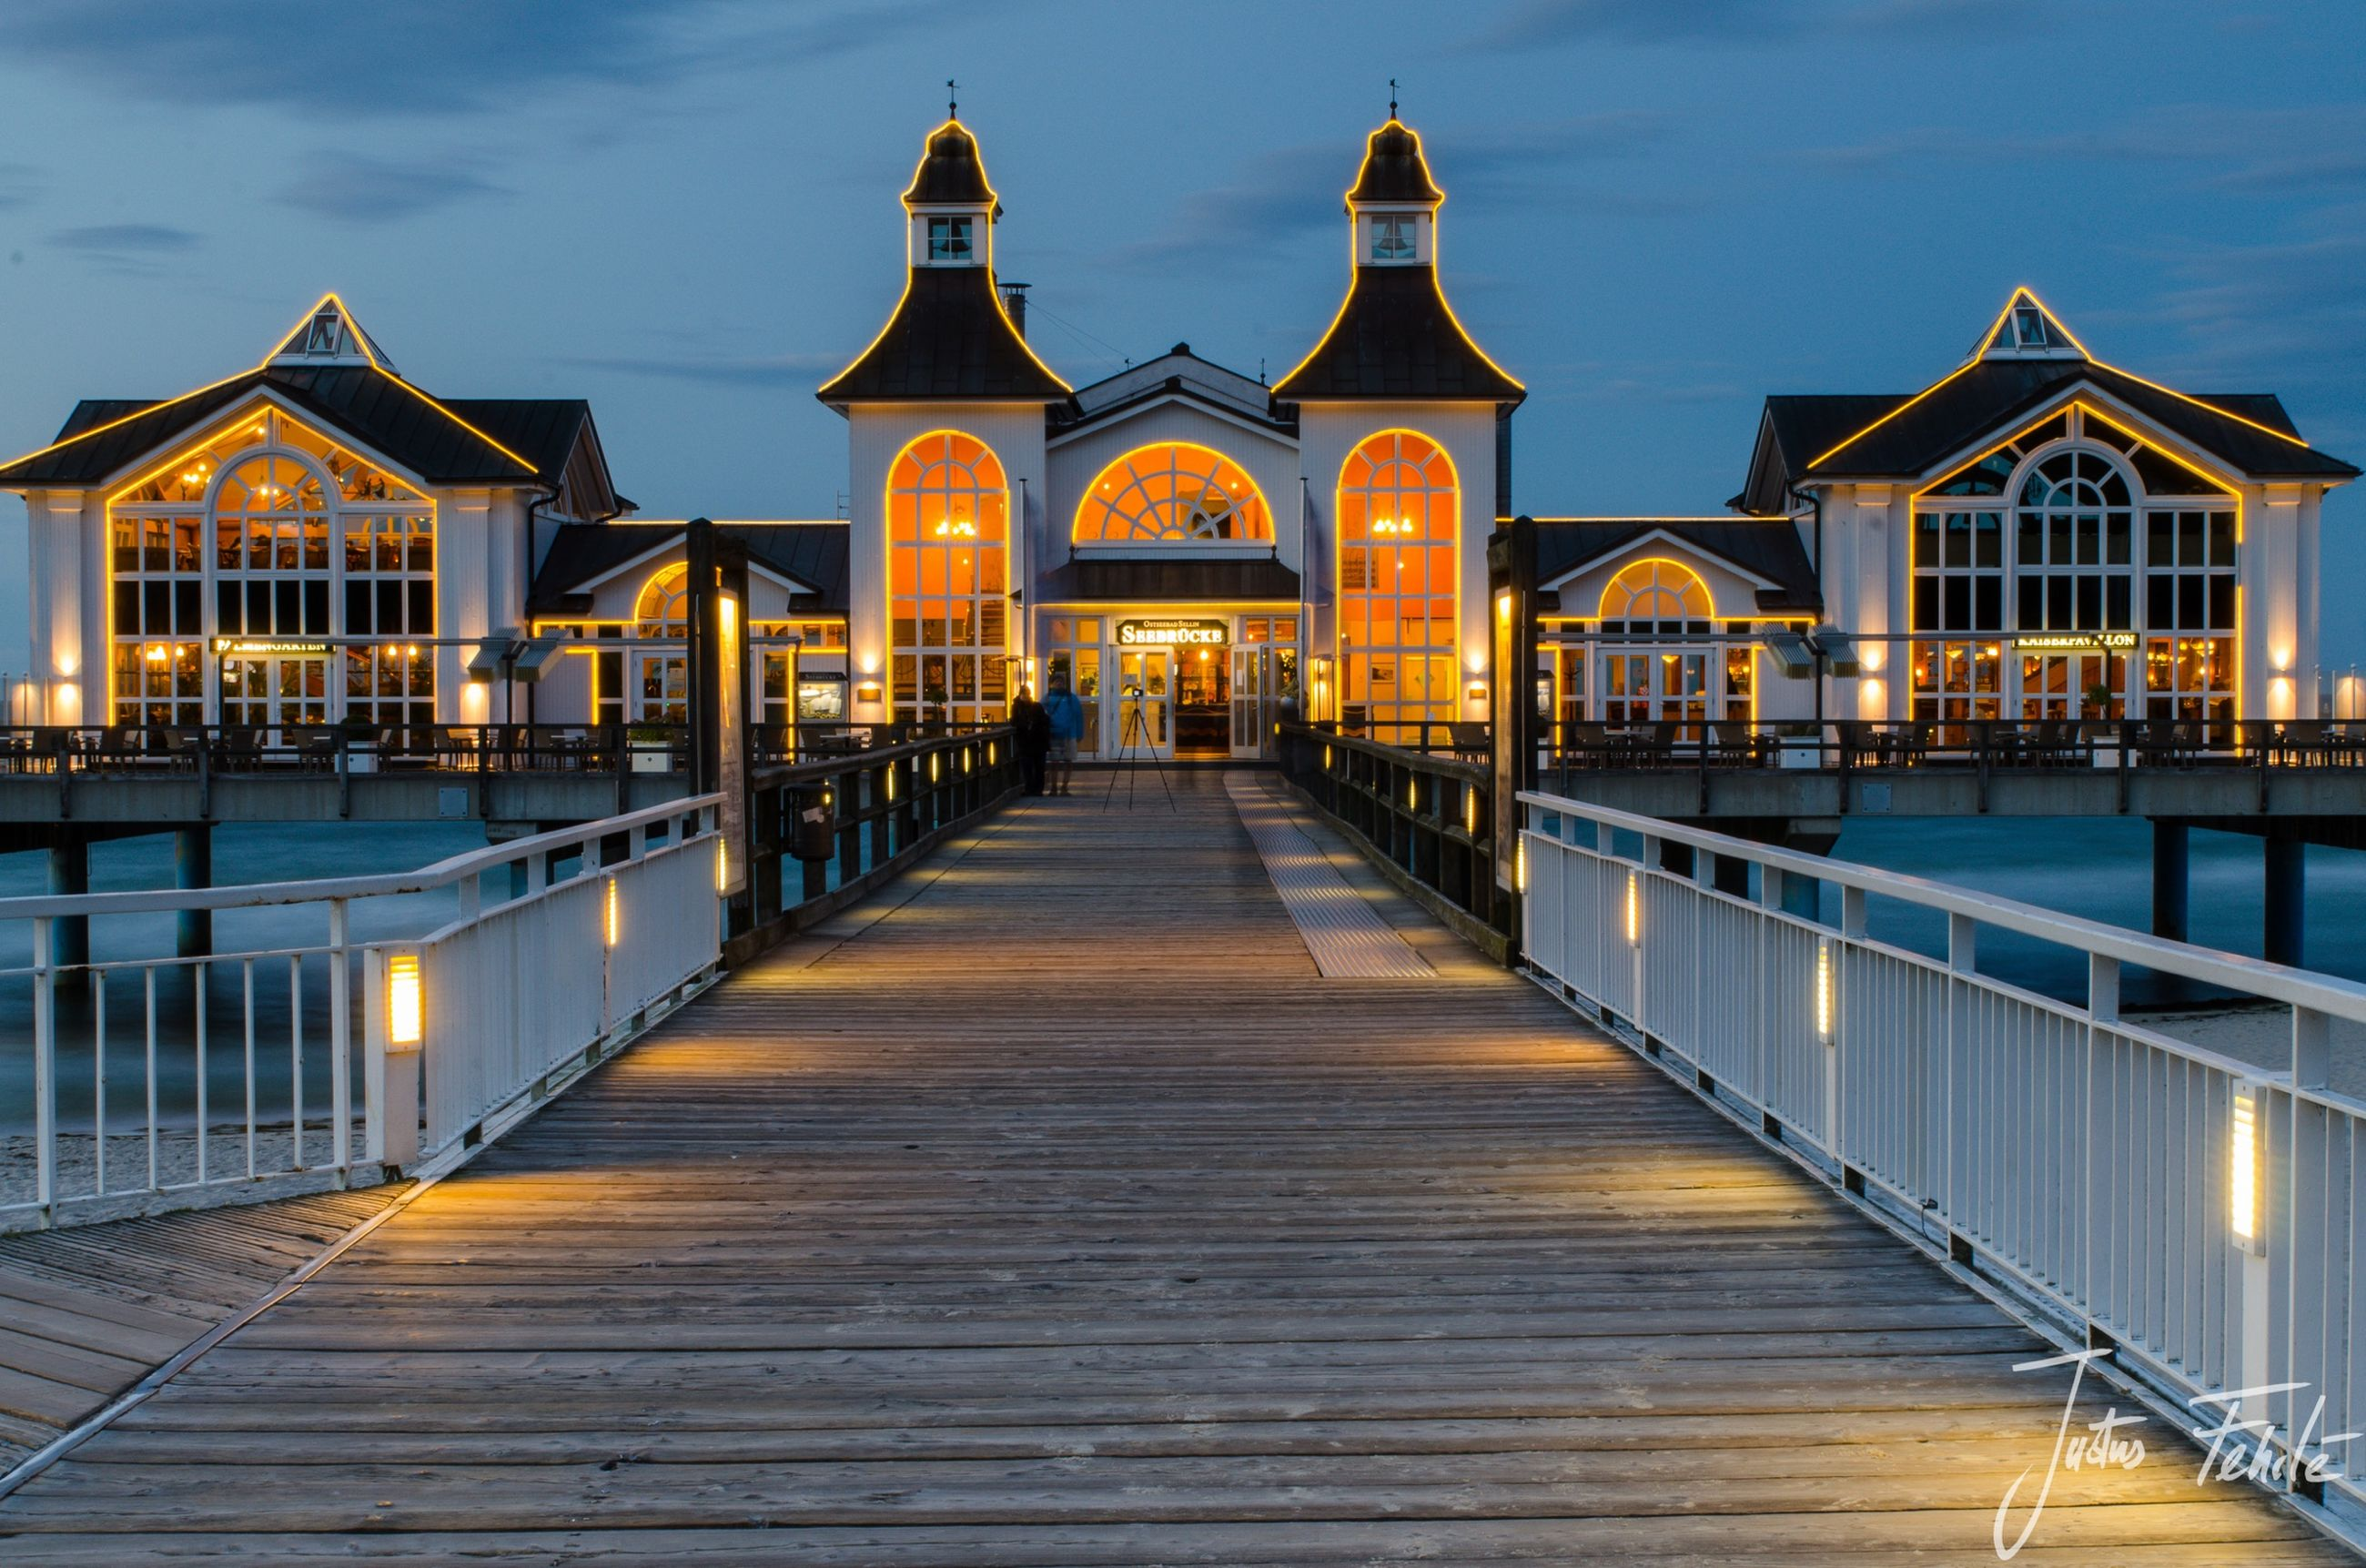 architecture, built structure, building exterior, the way forward, sky, railing, street light, illuminated, water, diminishing perspective, arch, in a row, outdoors, architectural column, incidental people, facade, reflection, no people, pier, travel destinations